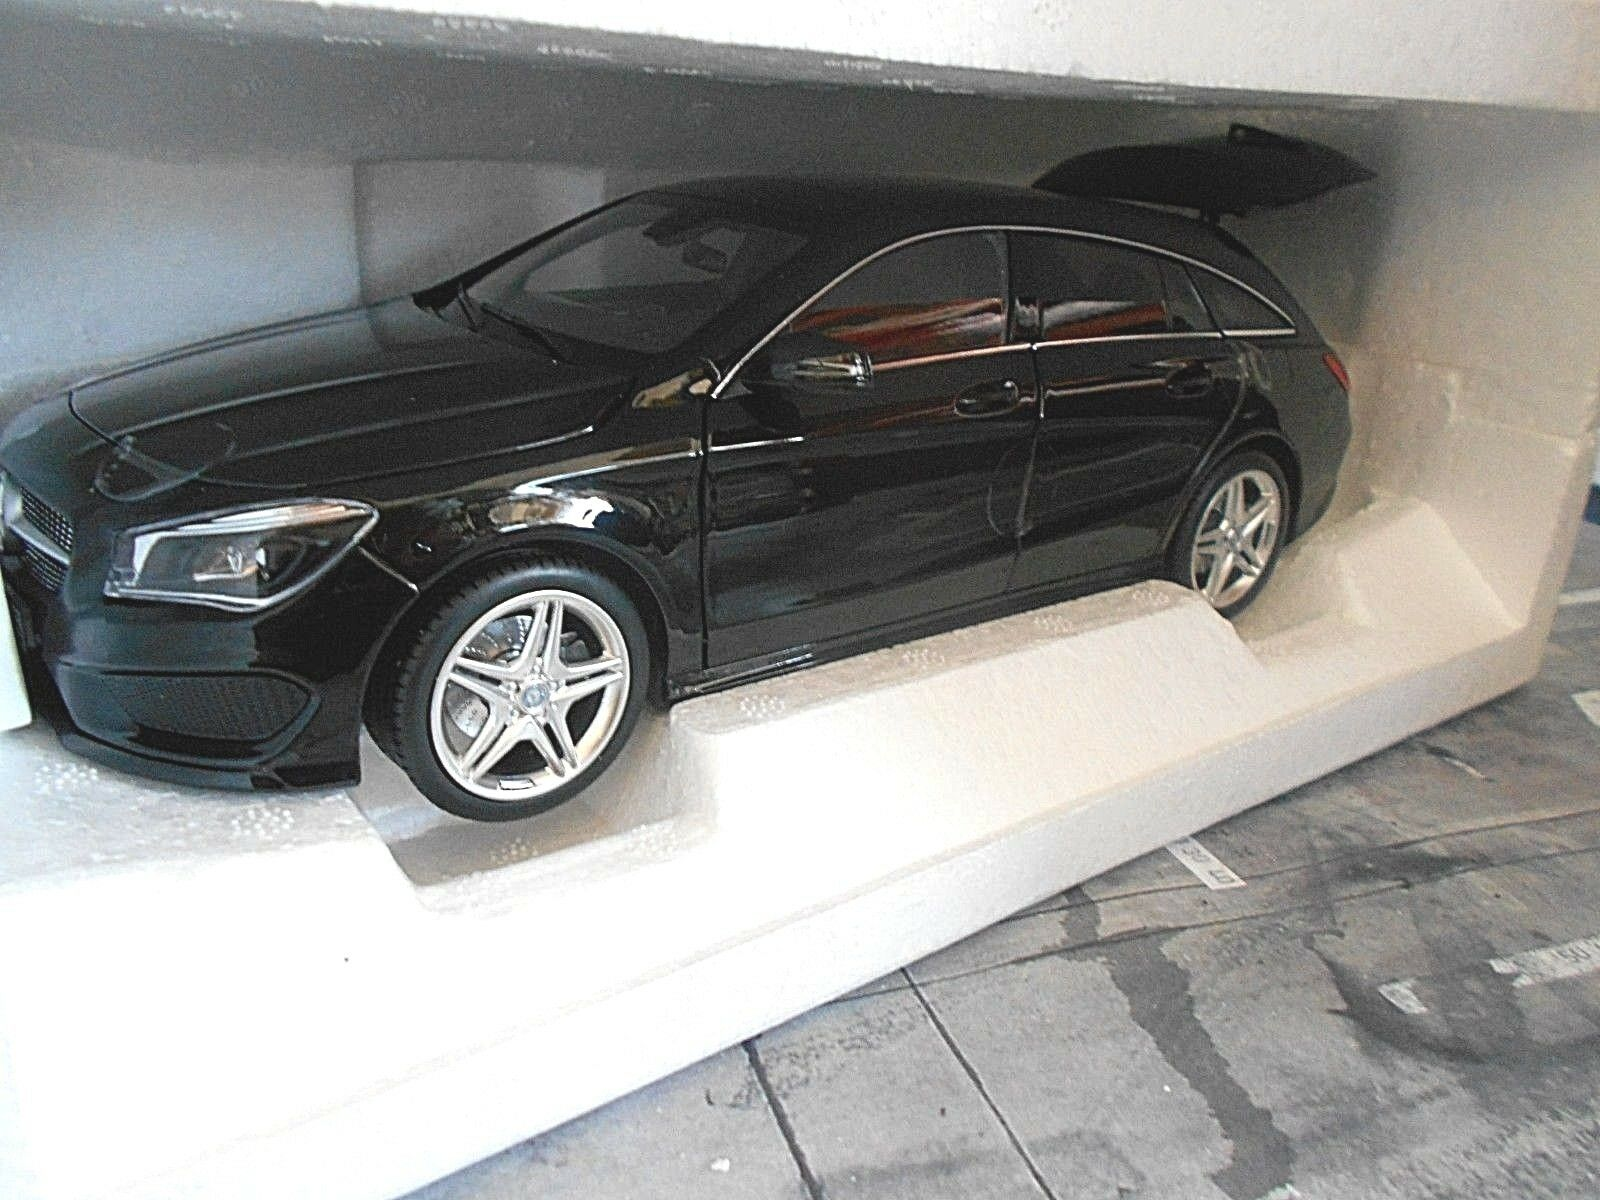 MERCEDES BENZ CLA C classe Shooting Brake Combi 2015 Noir 217 Limit 1 18 NEUF